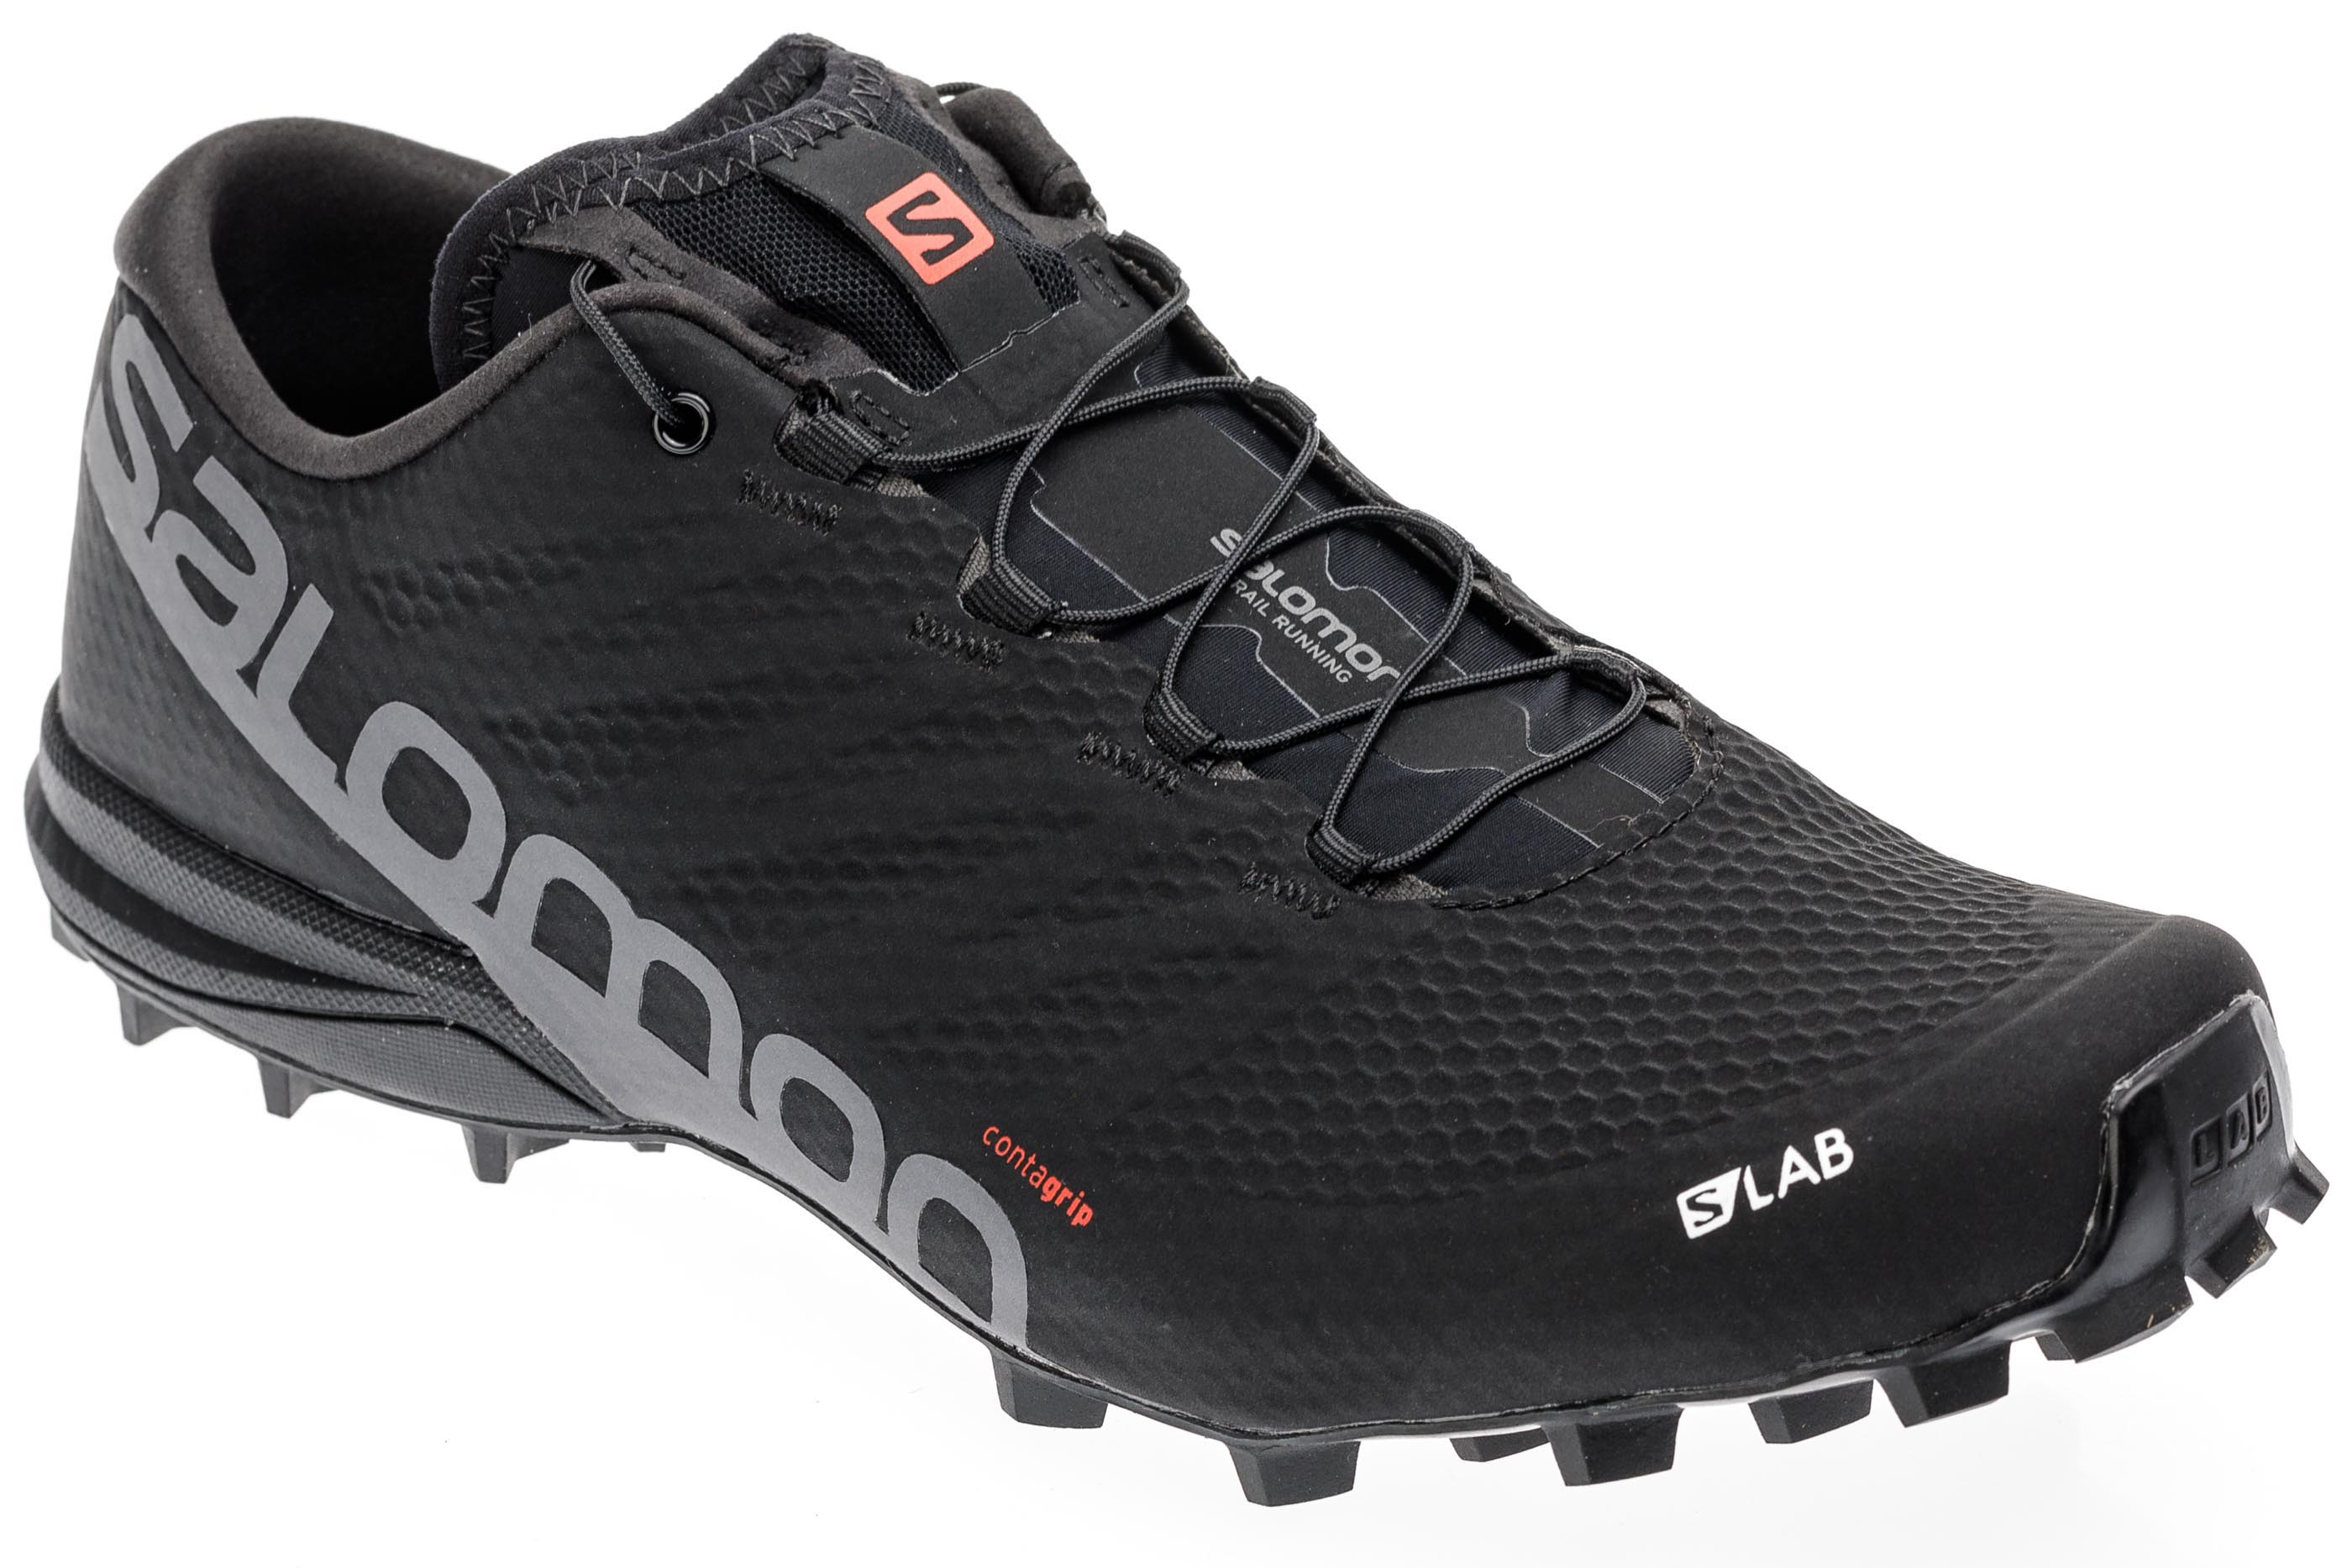 e34b740a Кроссовки мужские Salomon S-Lab Speed 2 Black/Racing Red/White - Фото